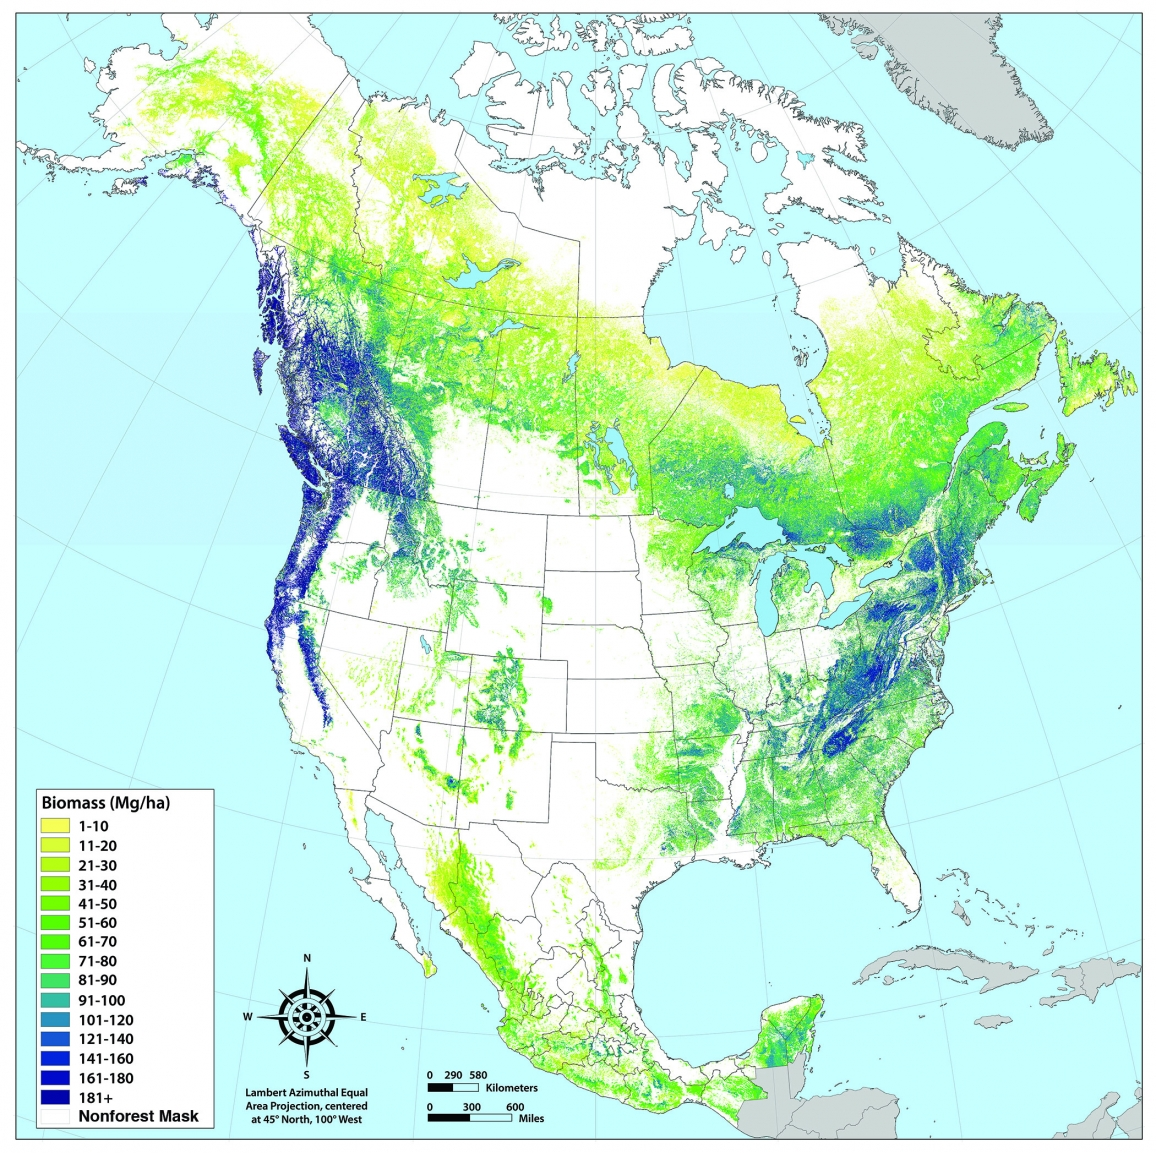 This image shows the distribution of aboveground forest biomass across North America, measured as milligrams of biomass per hectare (mg/ha).